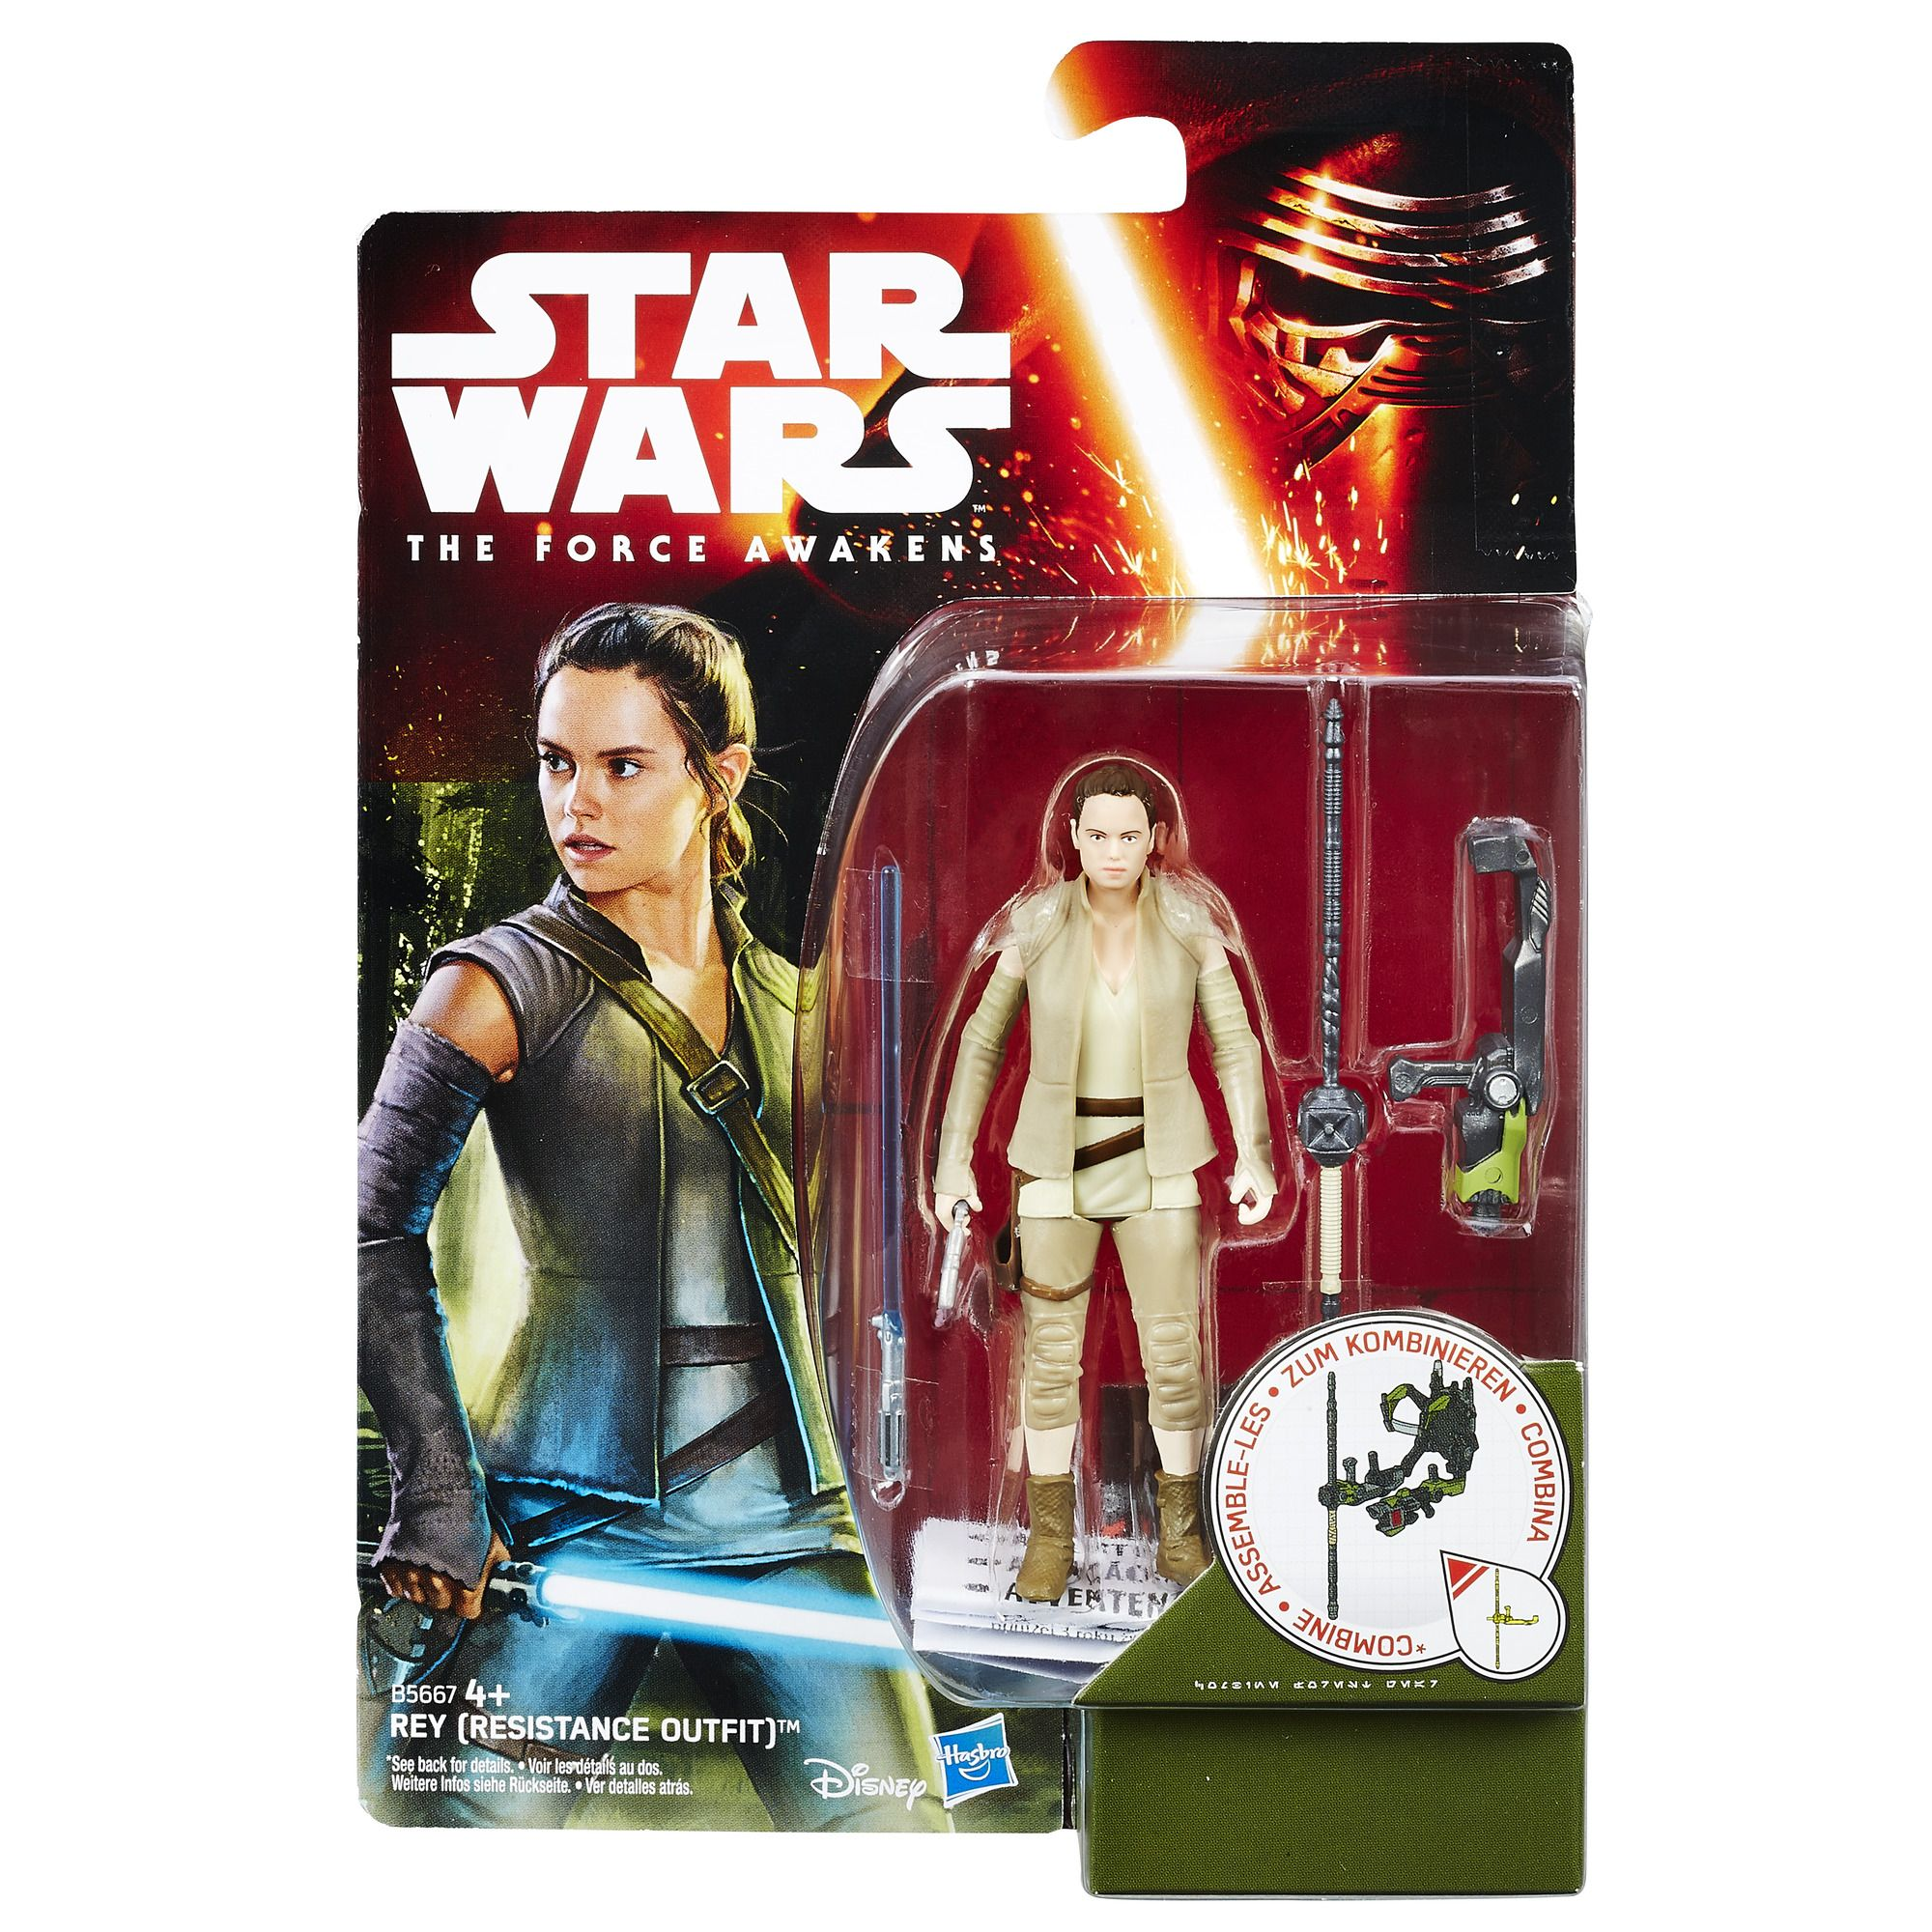 Star Wars The Force Awakens Rey (Resistance Outfit)